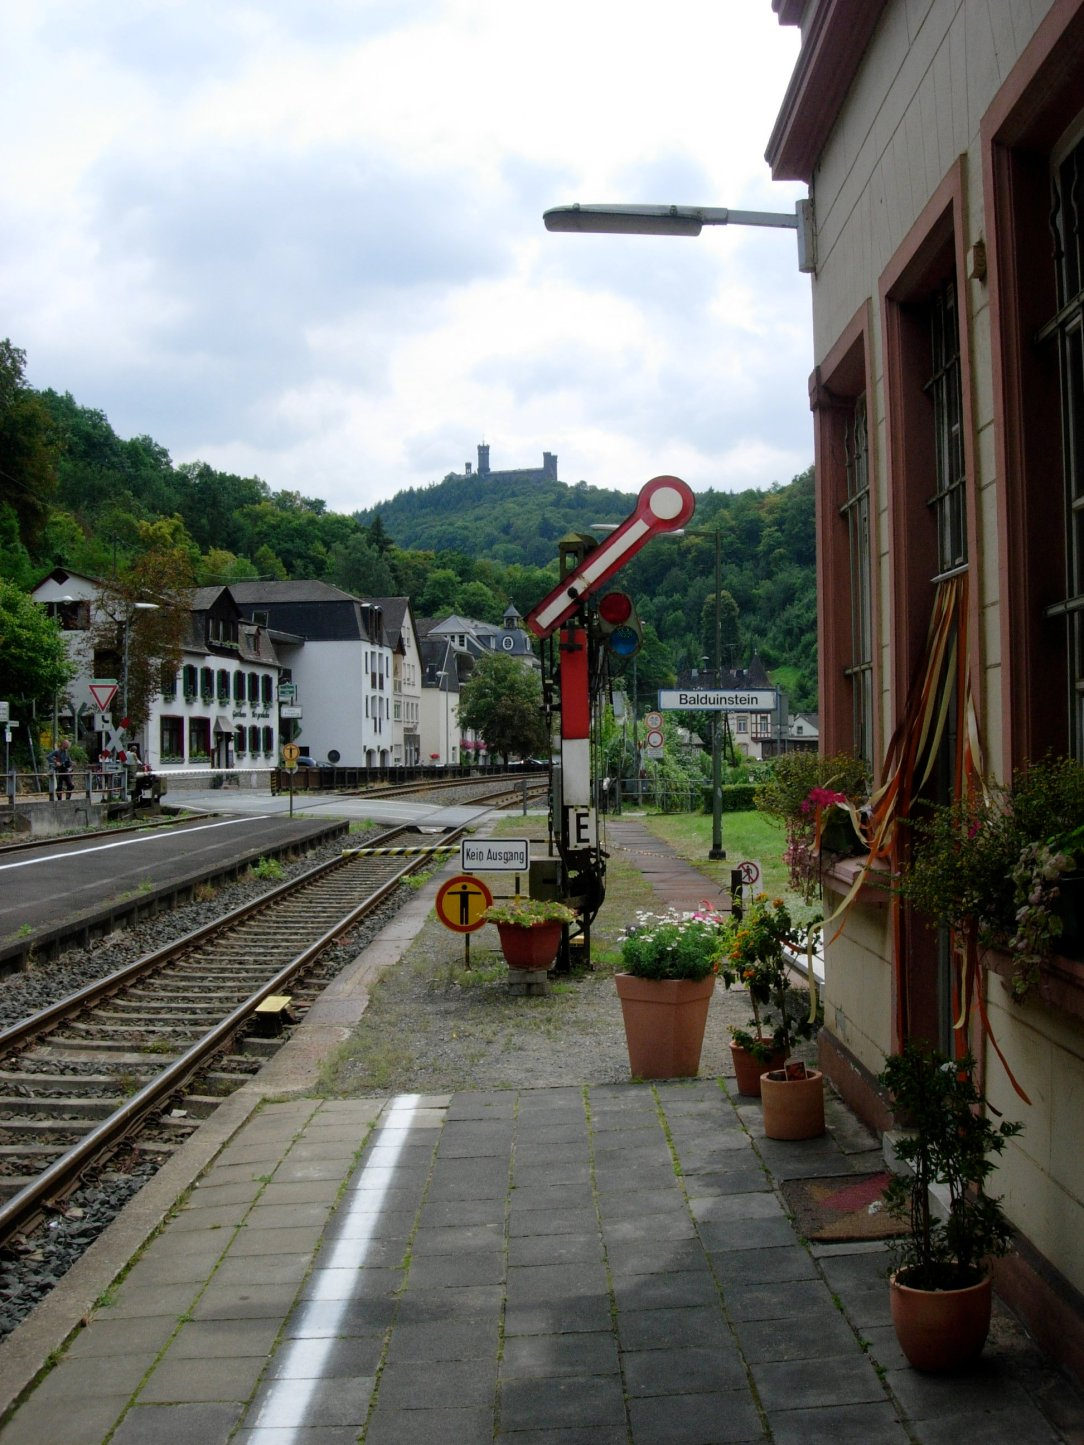 A small station in Germany